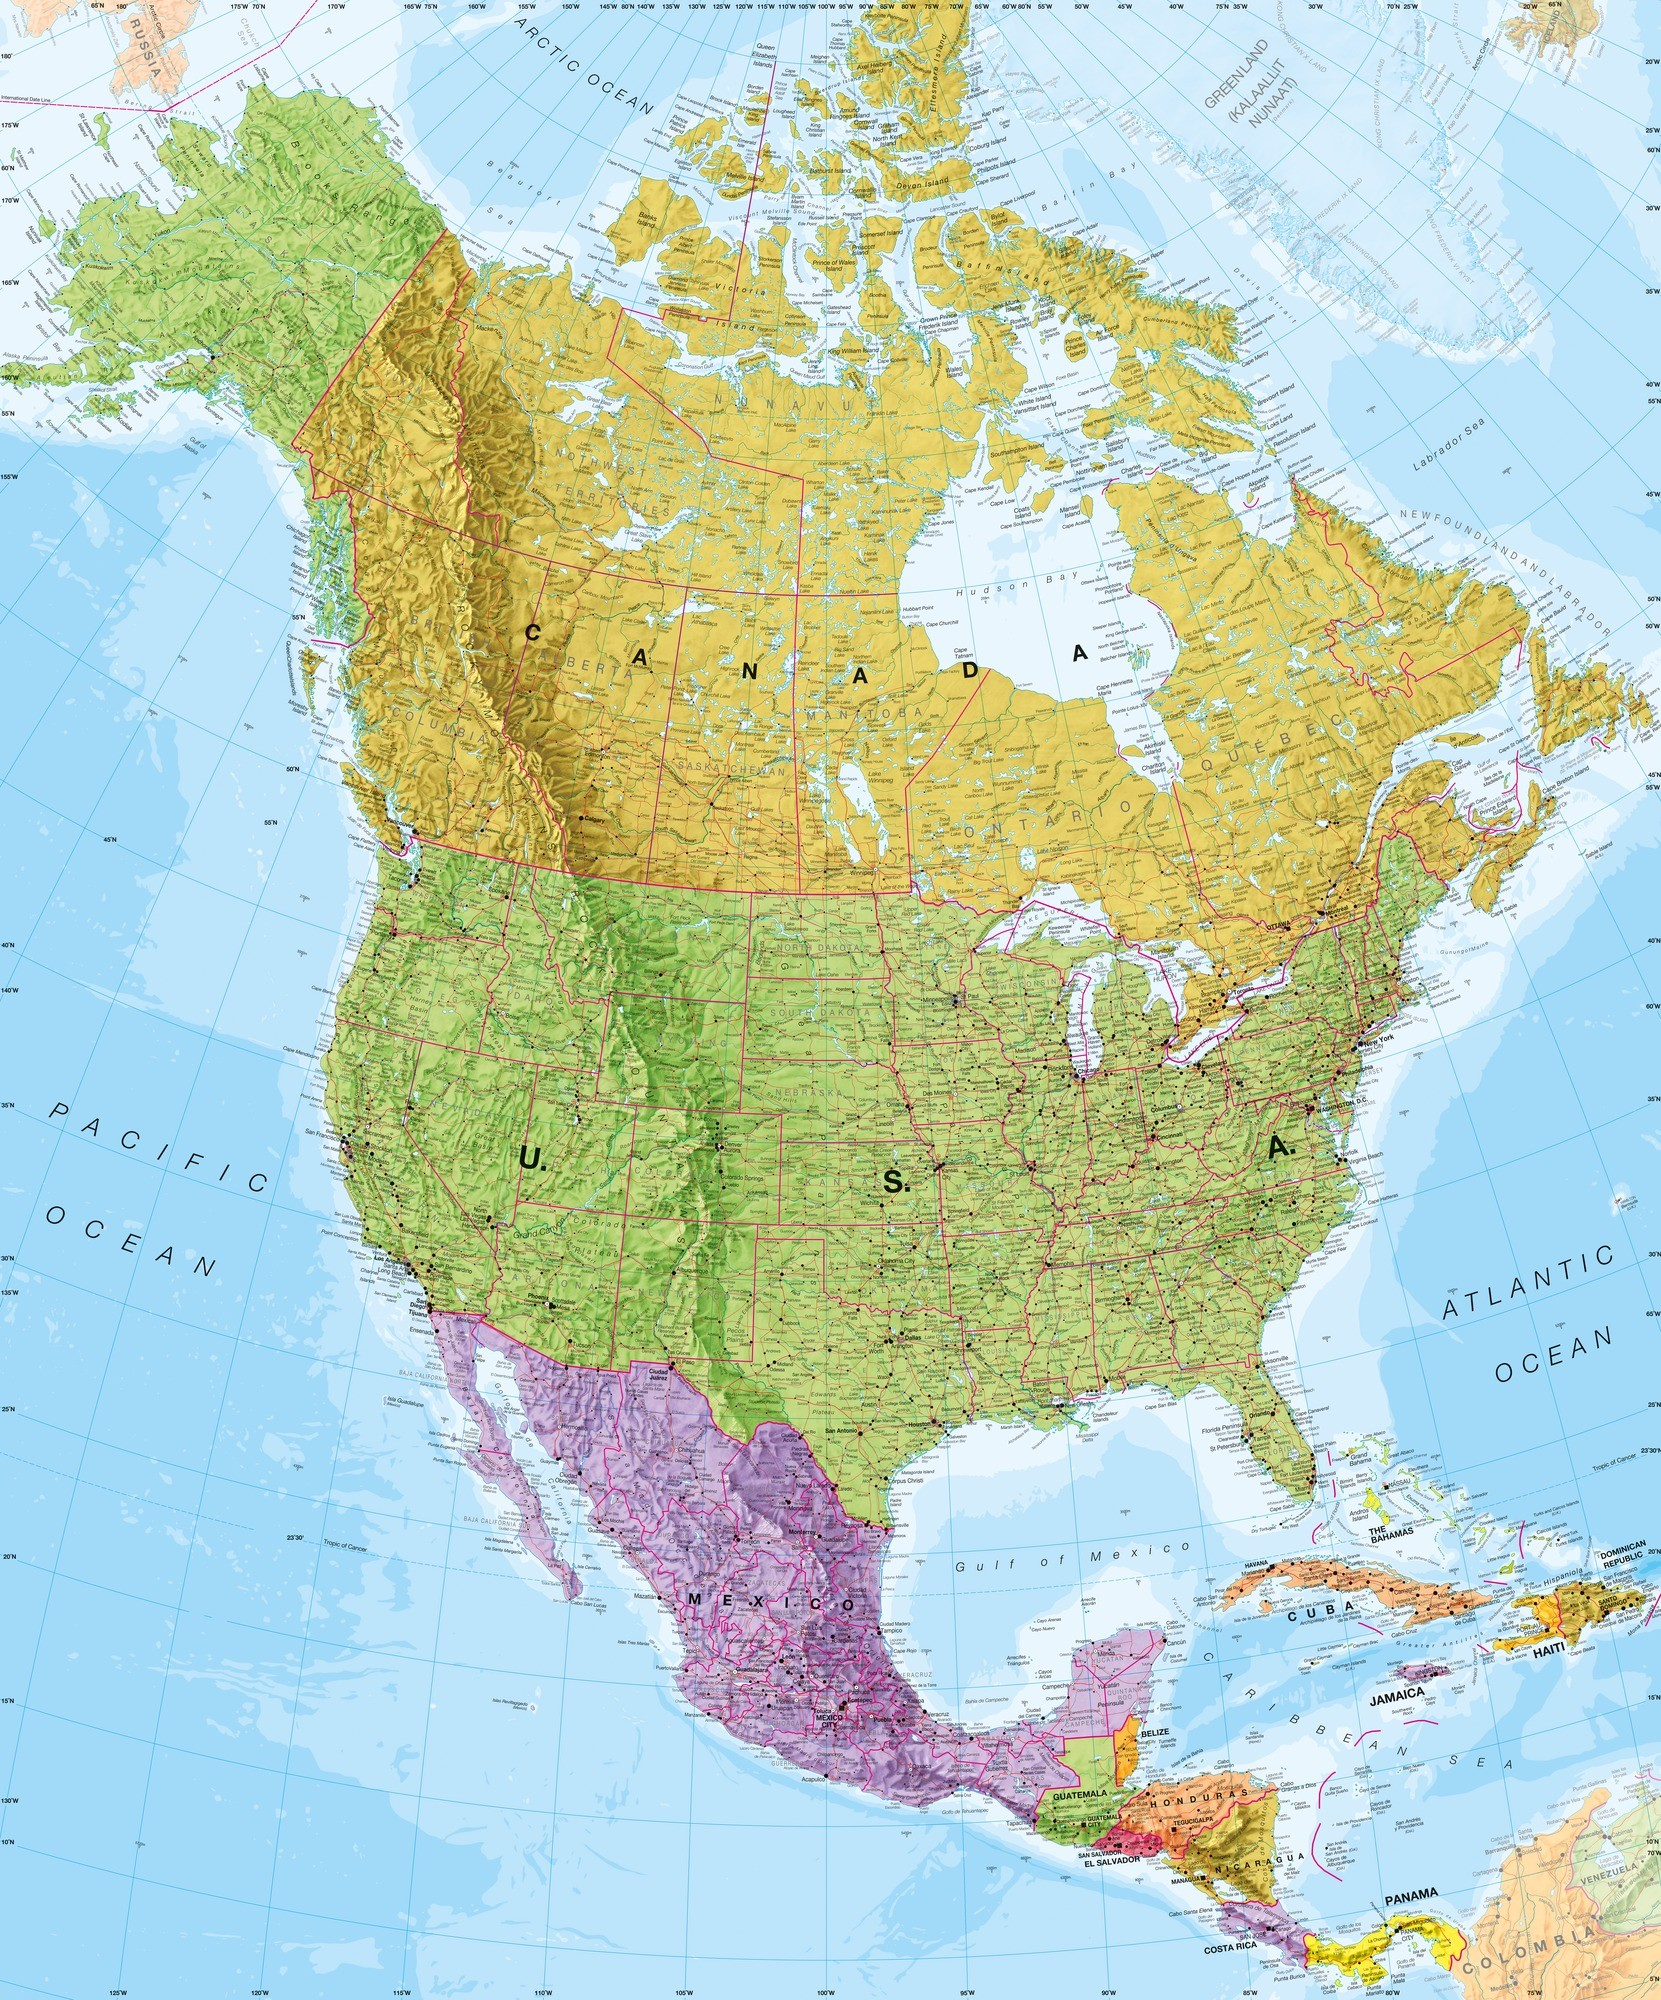 1661x2000 Political North America Map Wallpaper Mural